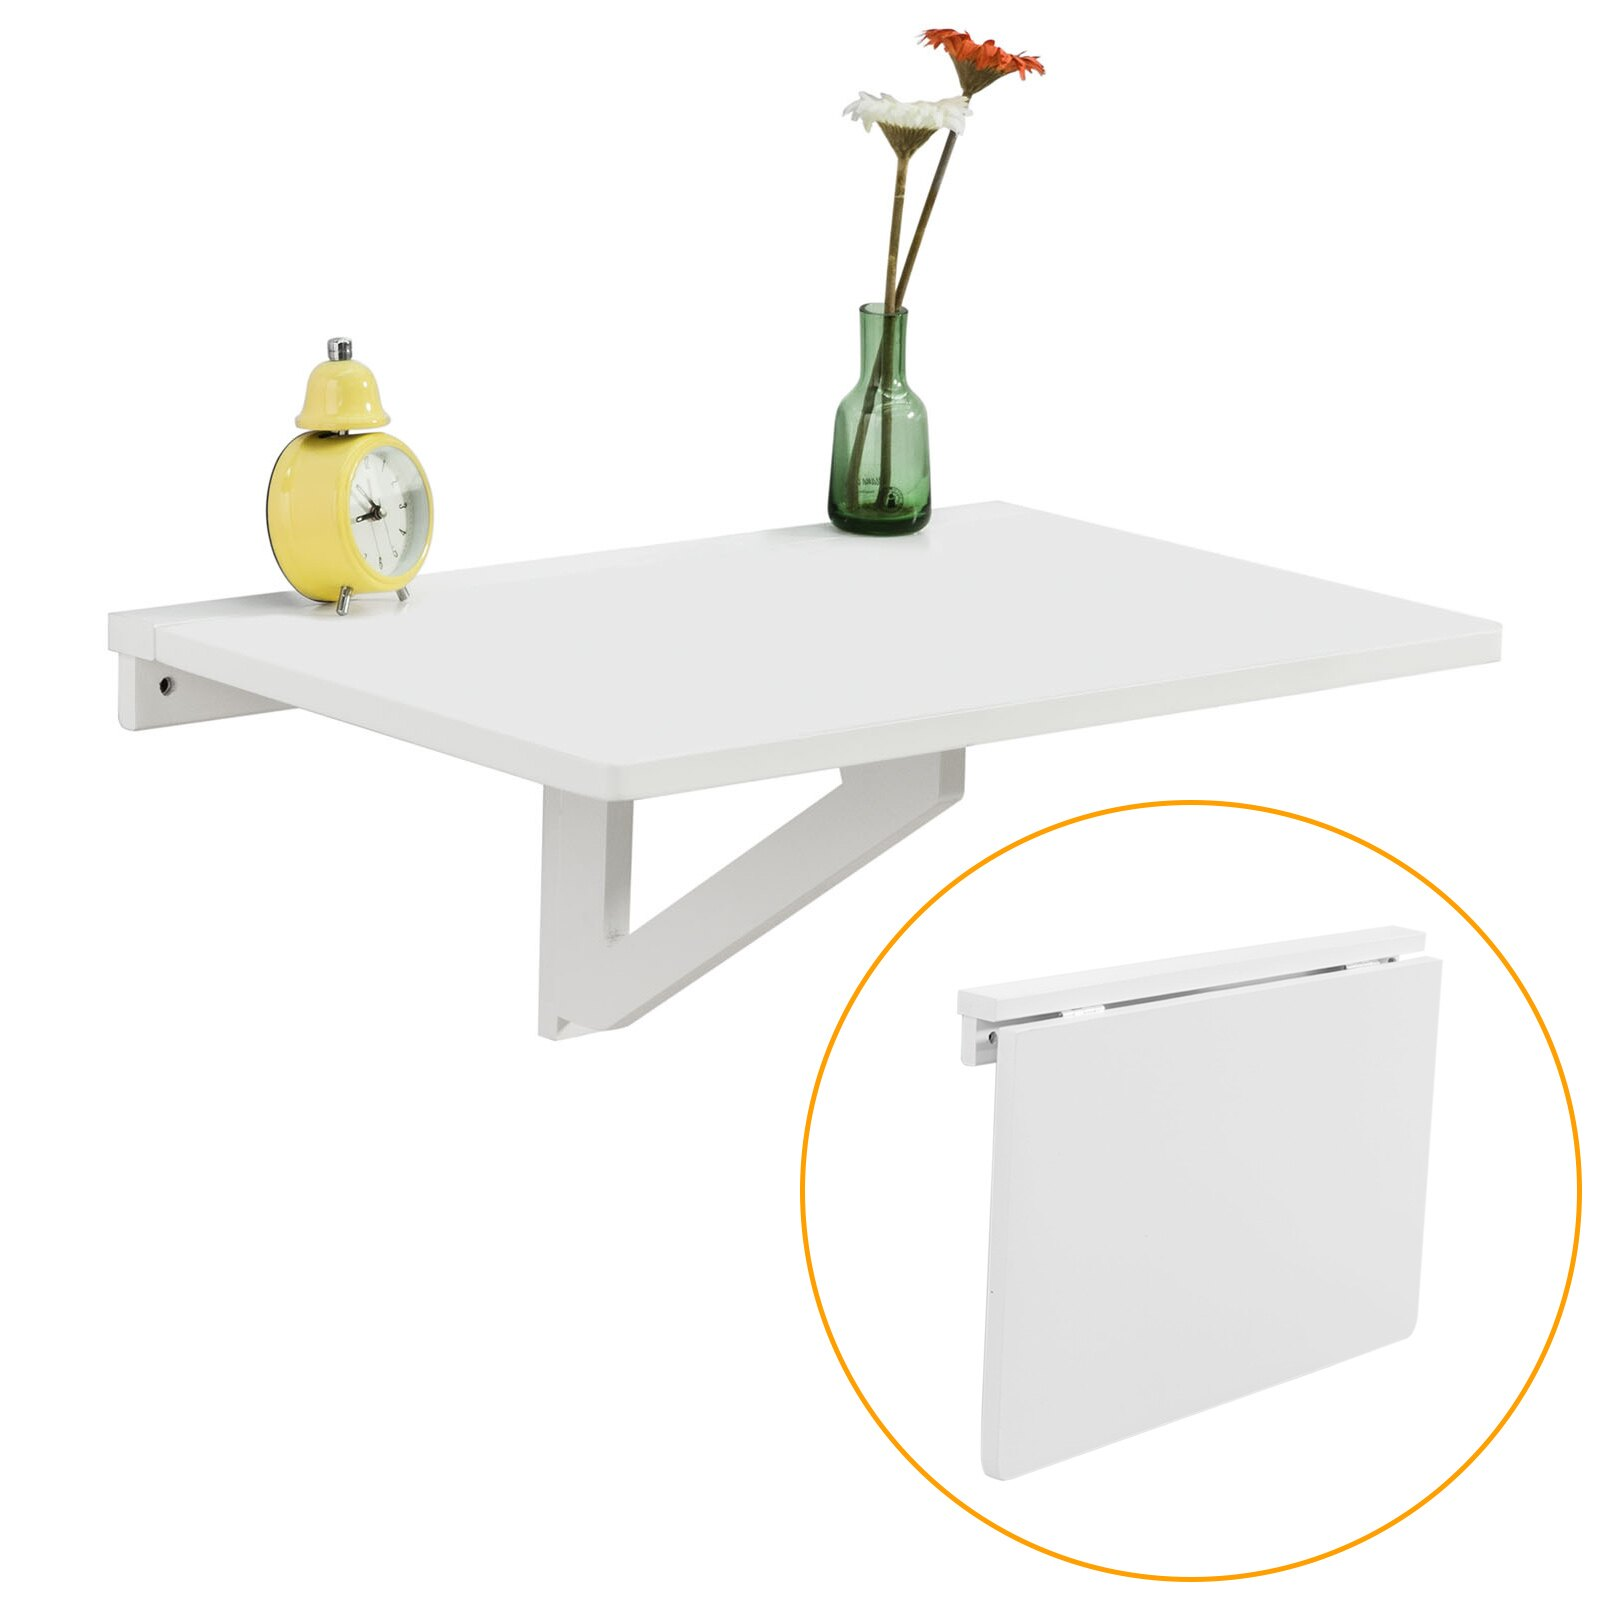 Haotian Wood Wall Mounted Drop Leaf Table, Folding Kitchen U0026 Dining Table  Desk